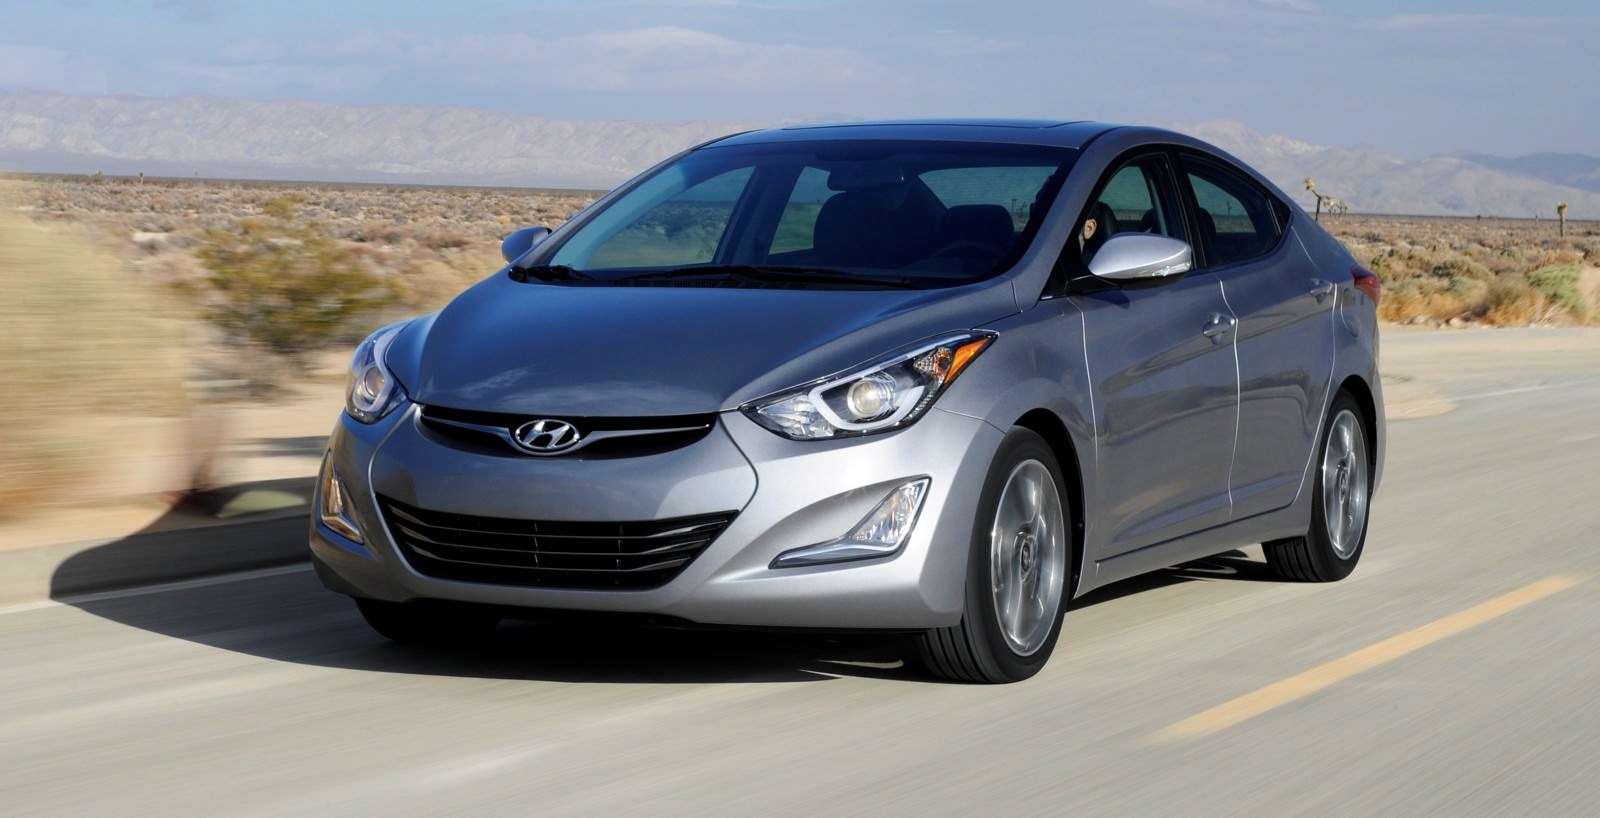 2015 Hyundai Elantra Sedan Brings Classy LED and Tech Updates  6